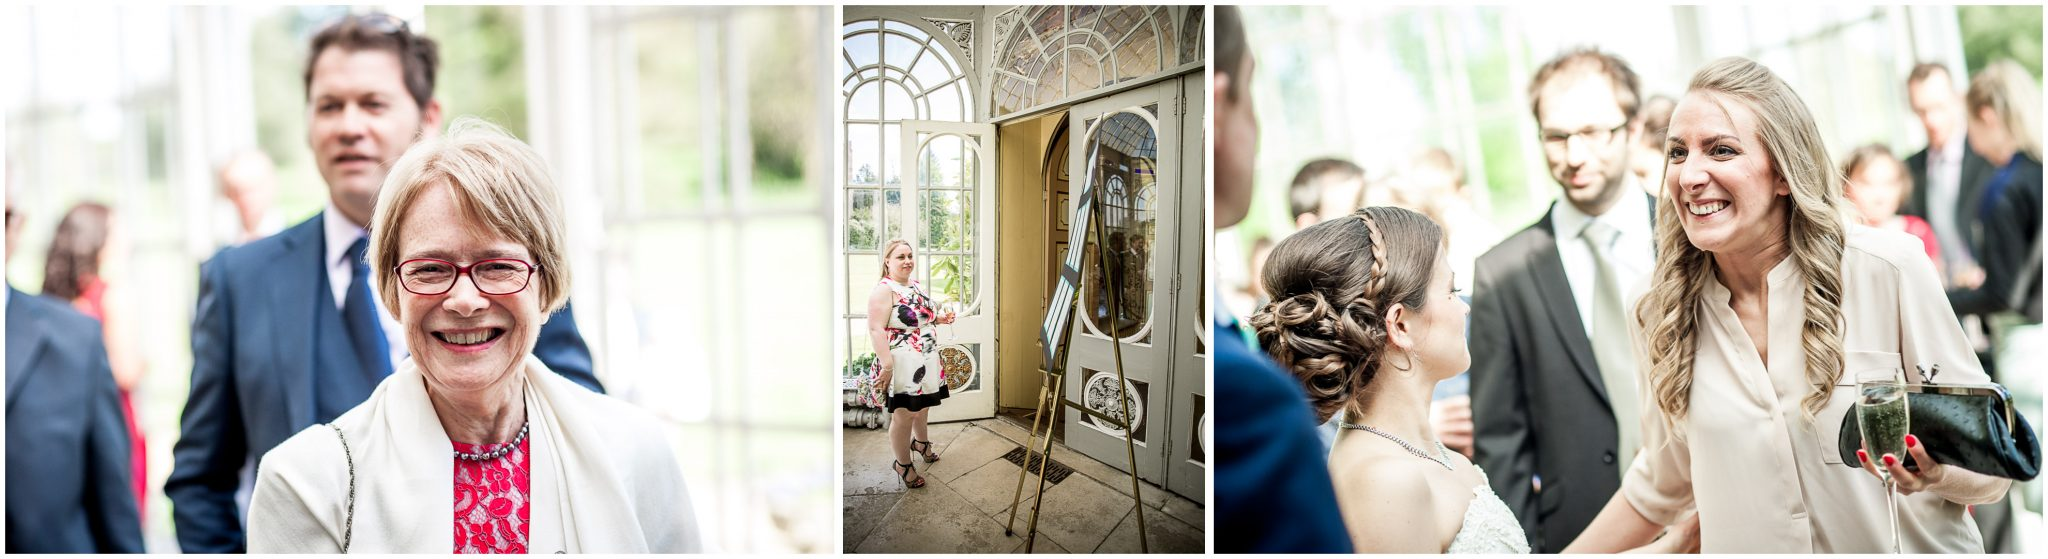 Avington Park wedding photography guests in orangery